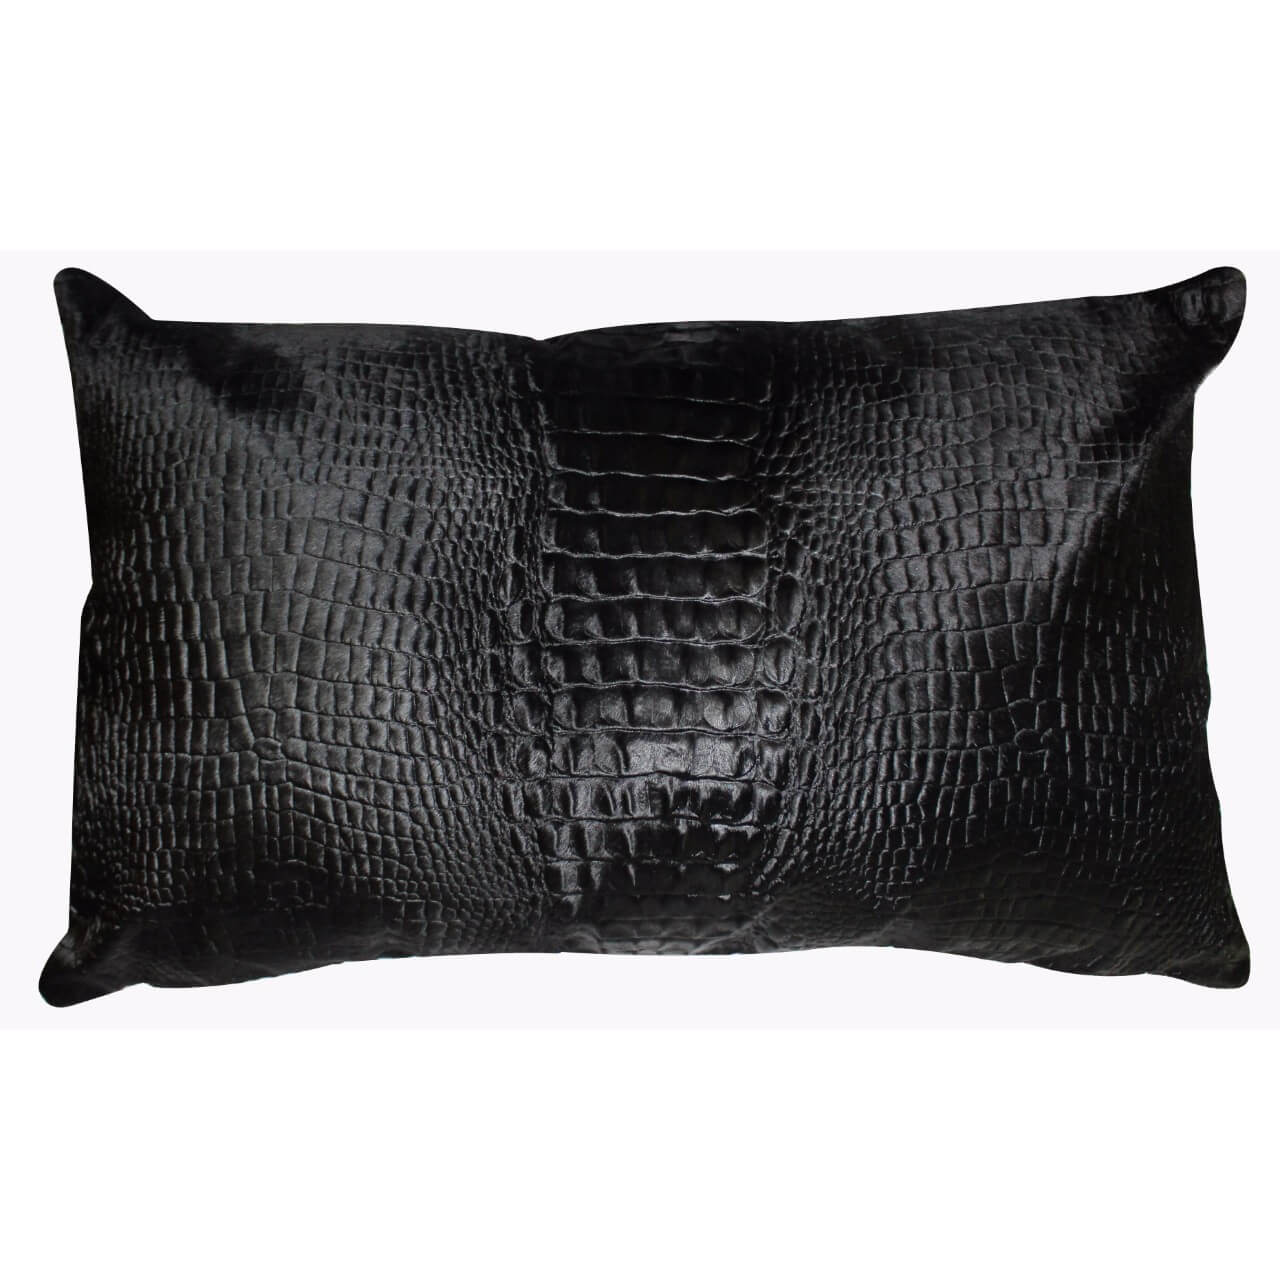 Cavallino Pillow- 35x55cm-(RENK_Croco)- (İSİM_Croco the Recta)(CPCRO20017BL3555) - ANVOGG FEEL SHEARLING | ANVOGG